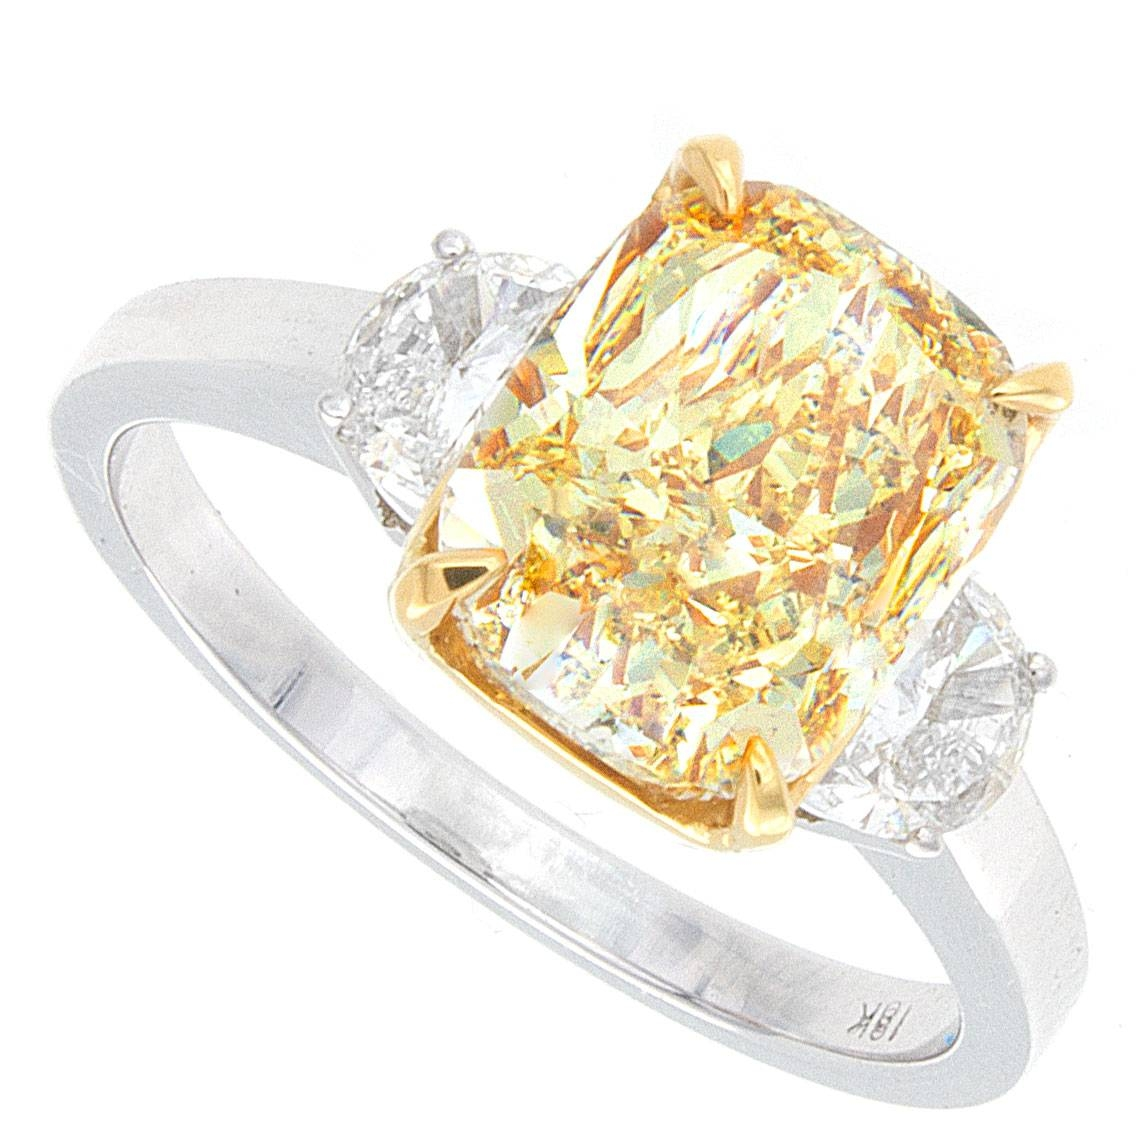 3.30Ct Cushion Cut Fancy Light Yellow Vvs Certified Diamond Pertaining To Vvs Engagement Rings (Gallery 15 of 15)